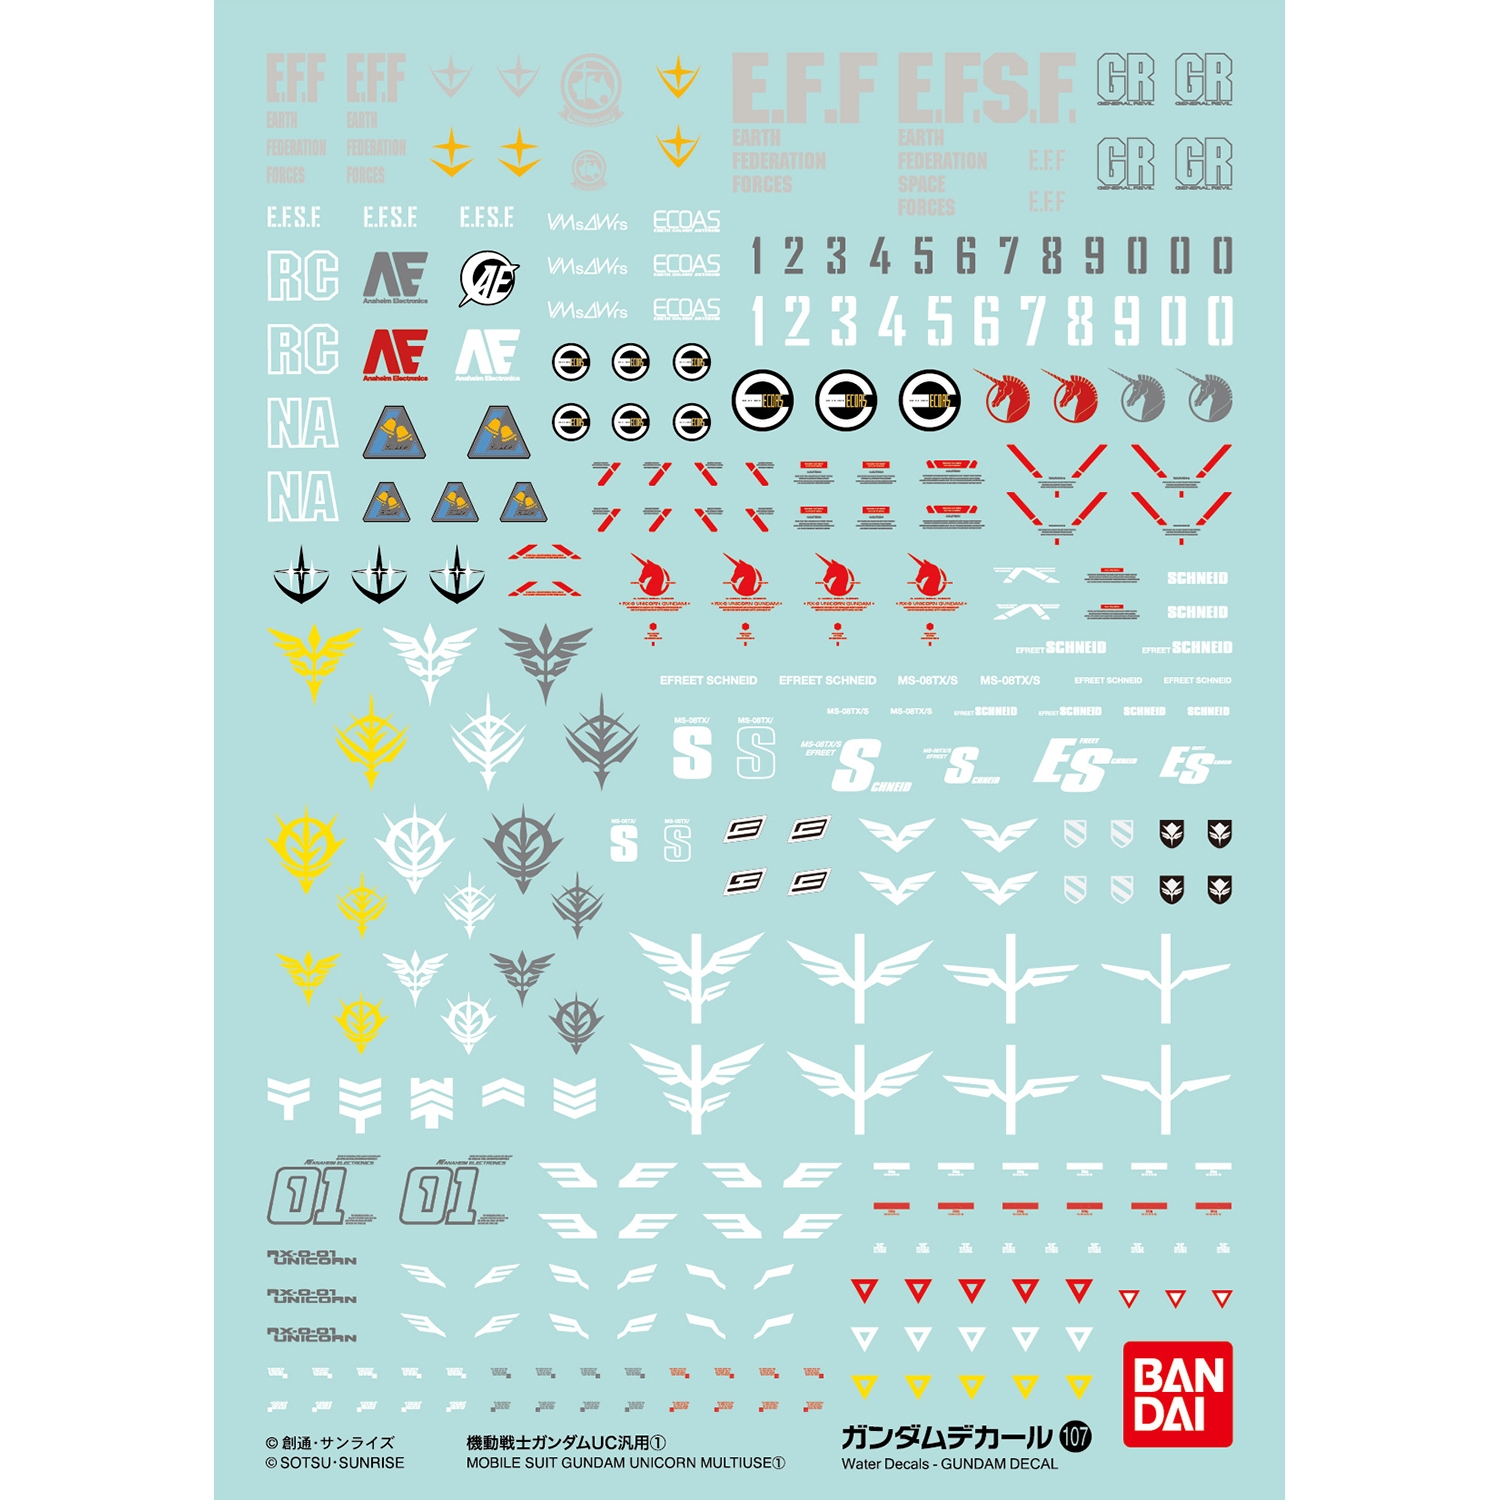 Gundam Decals #107: Mobile Suit Gundam Uc 1